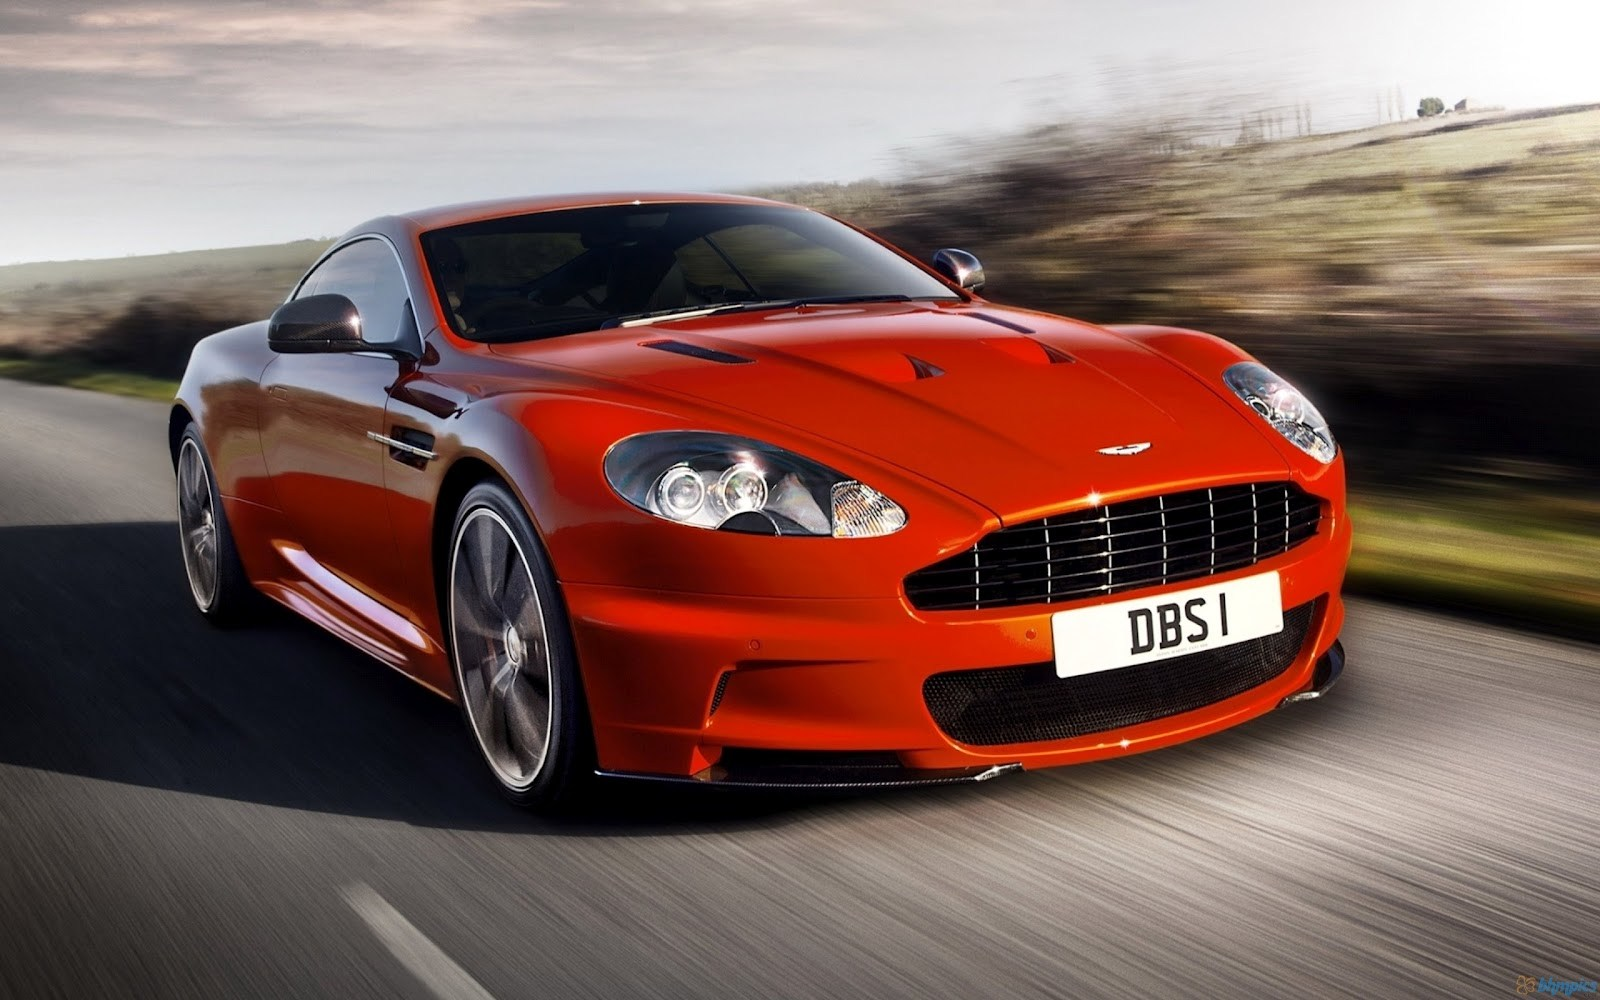 Aston Martin DBS Ultimate Edition Wallpaper 32 1600x1000 2016 Trident ...